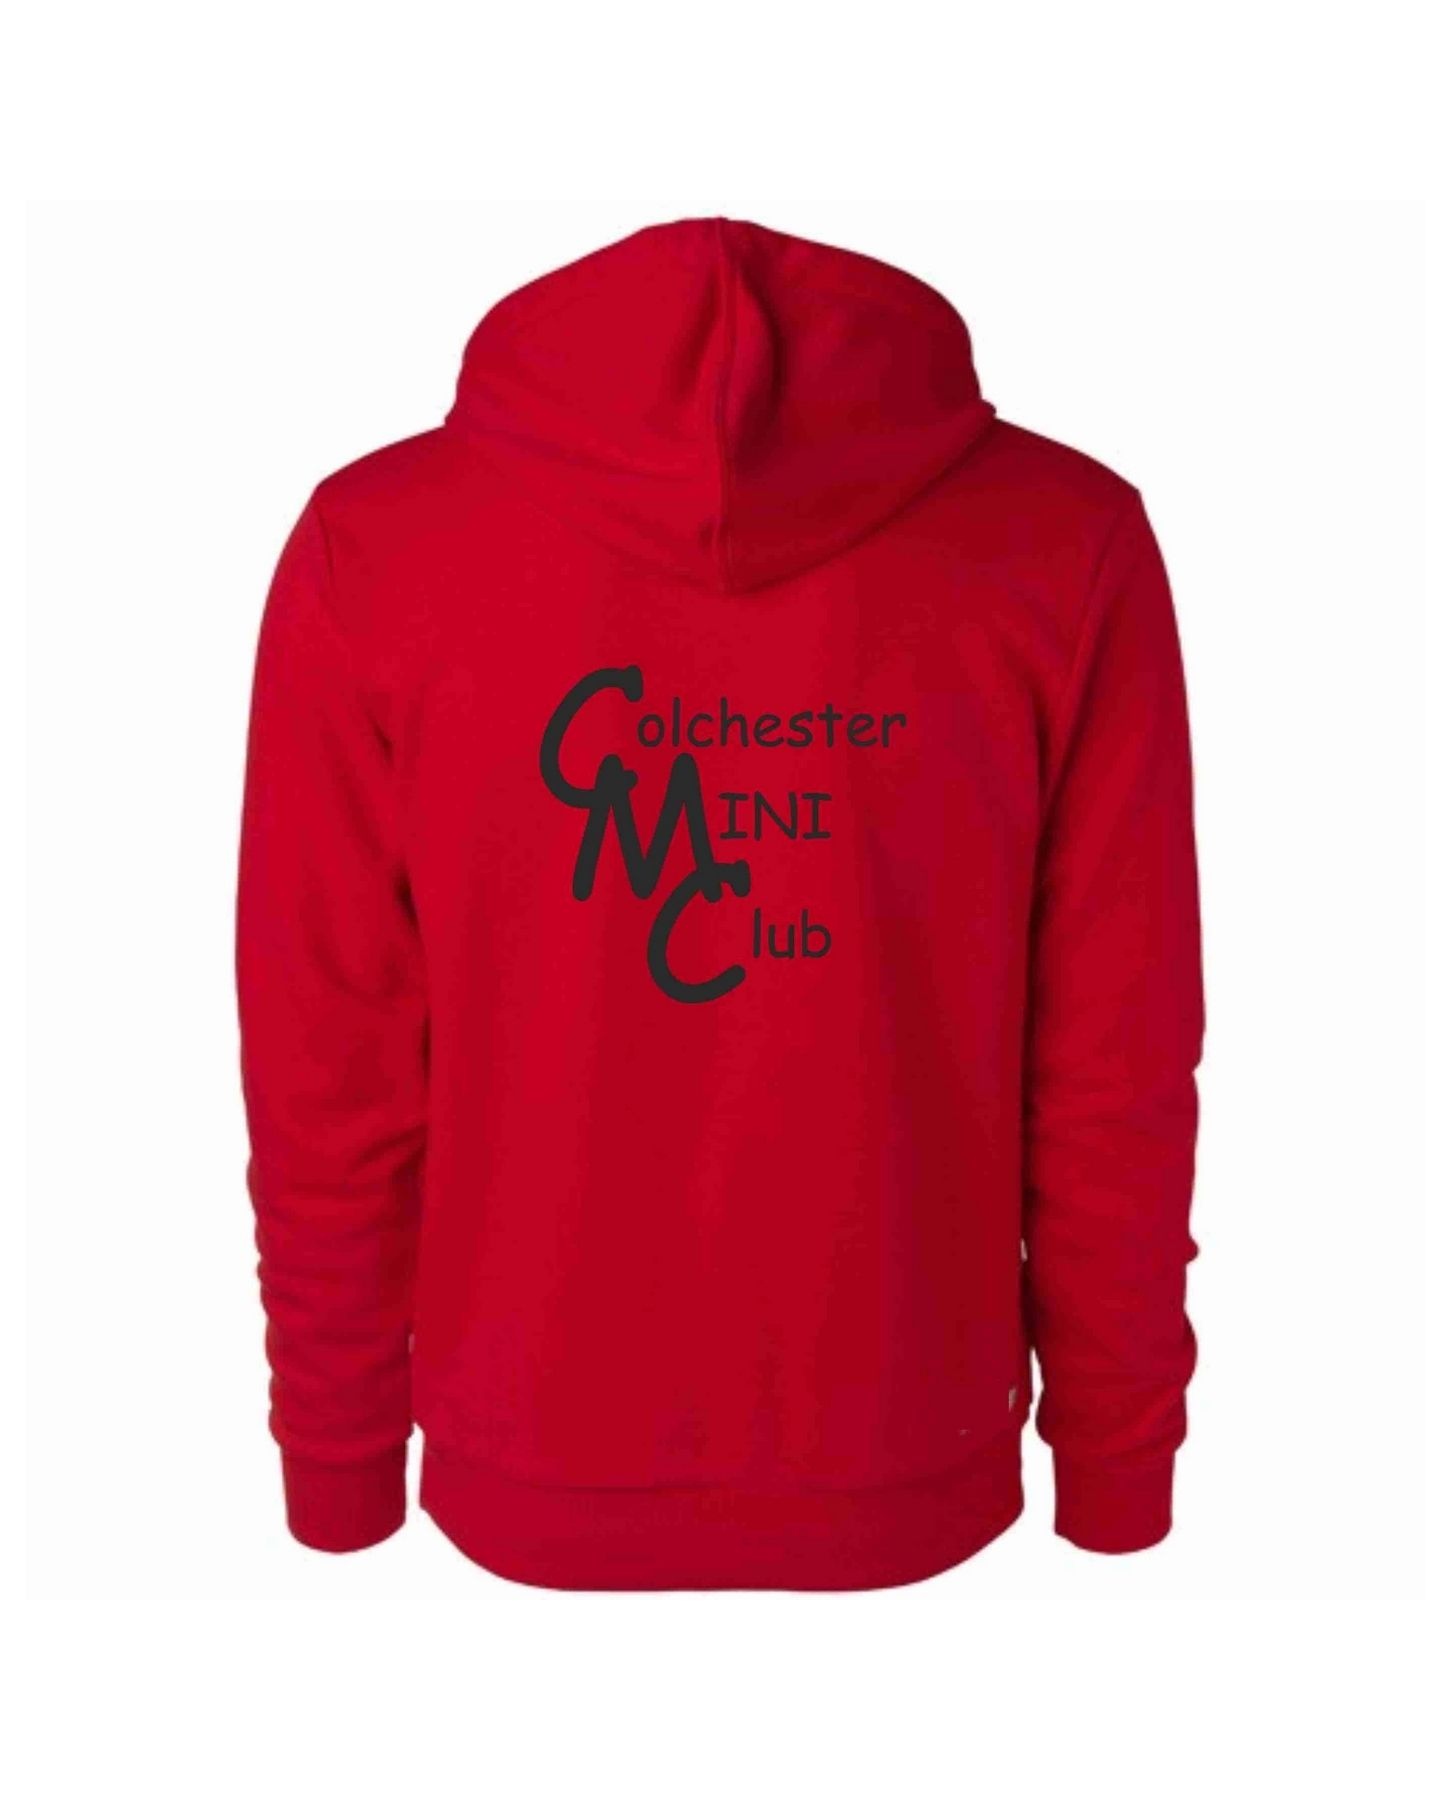 CMC – Uneek Hoodie in Red